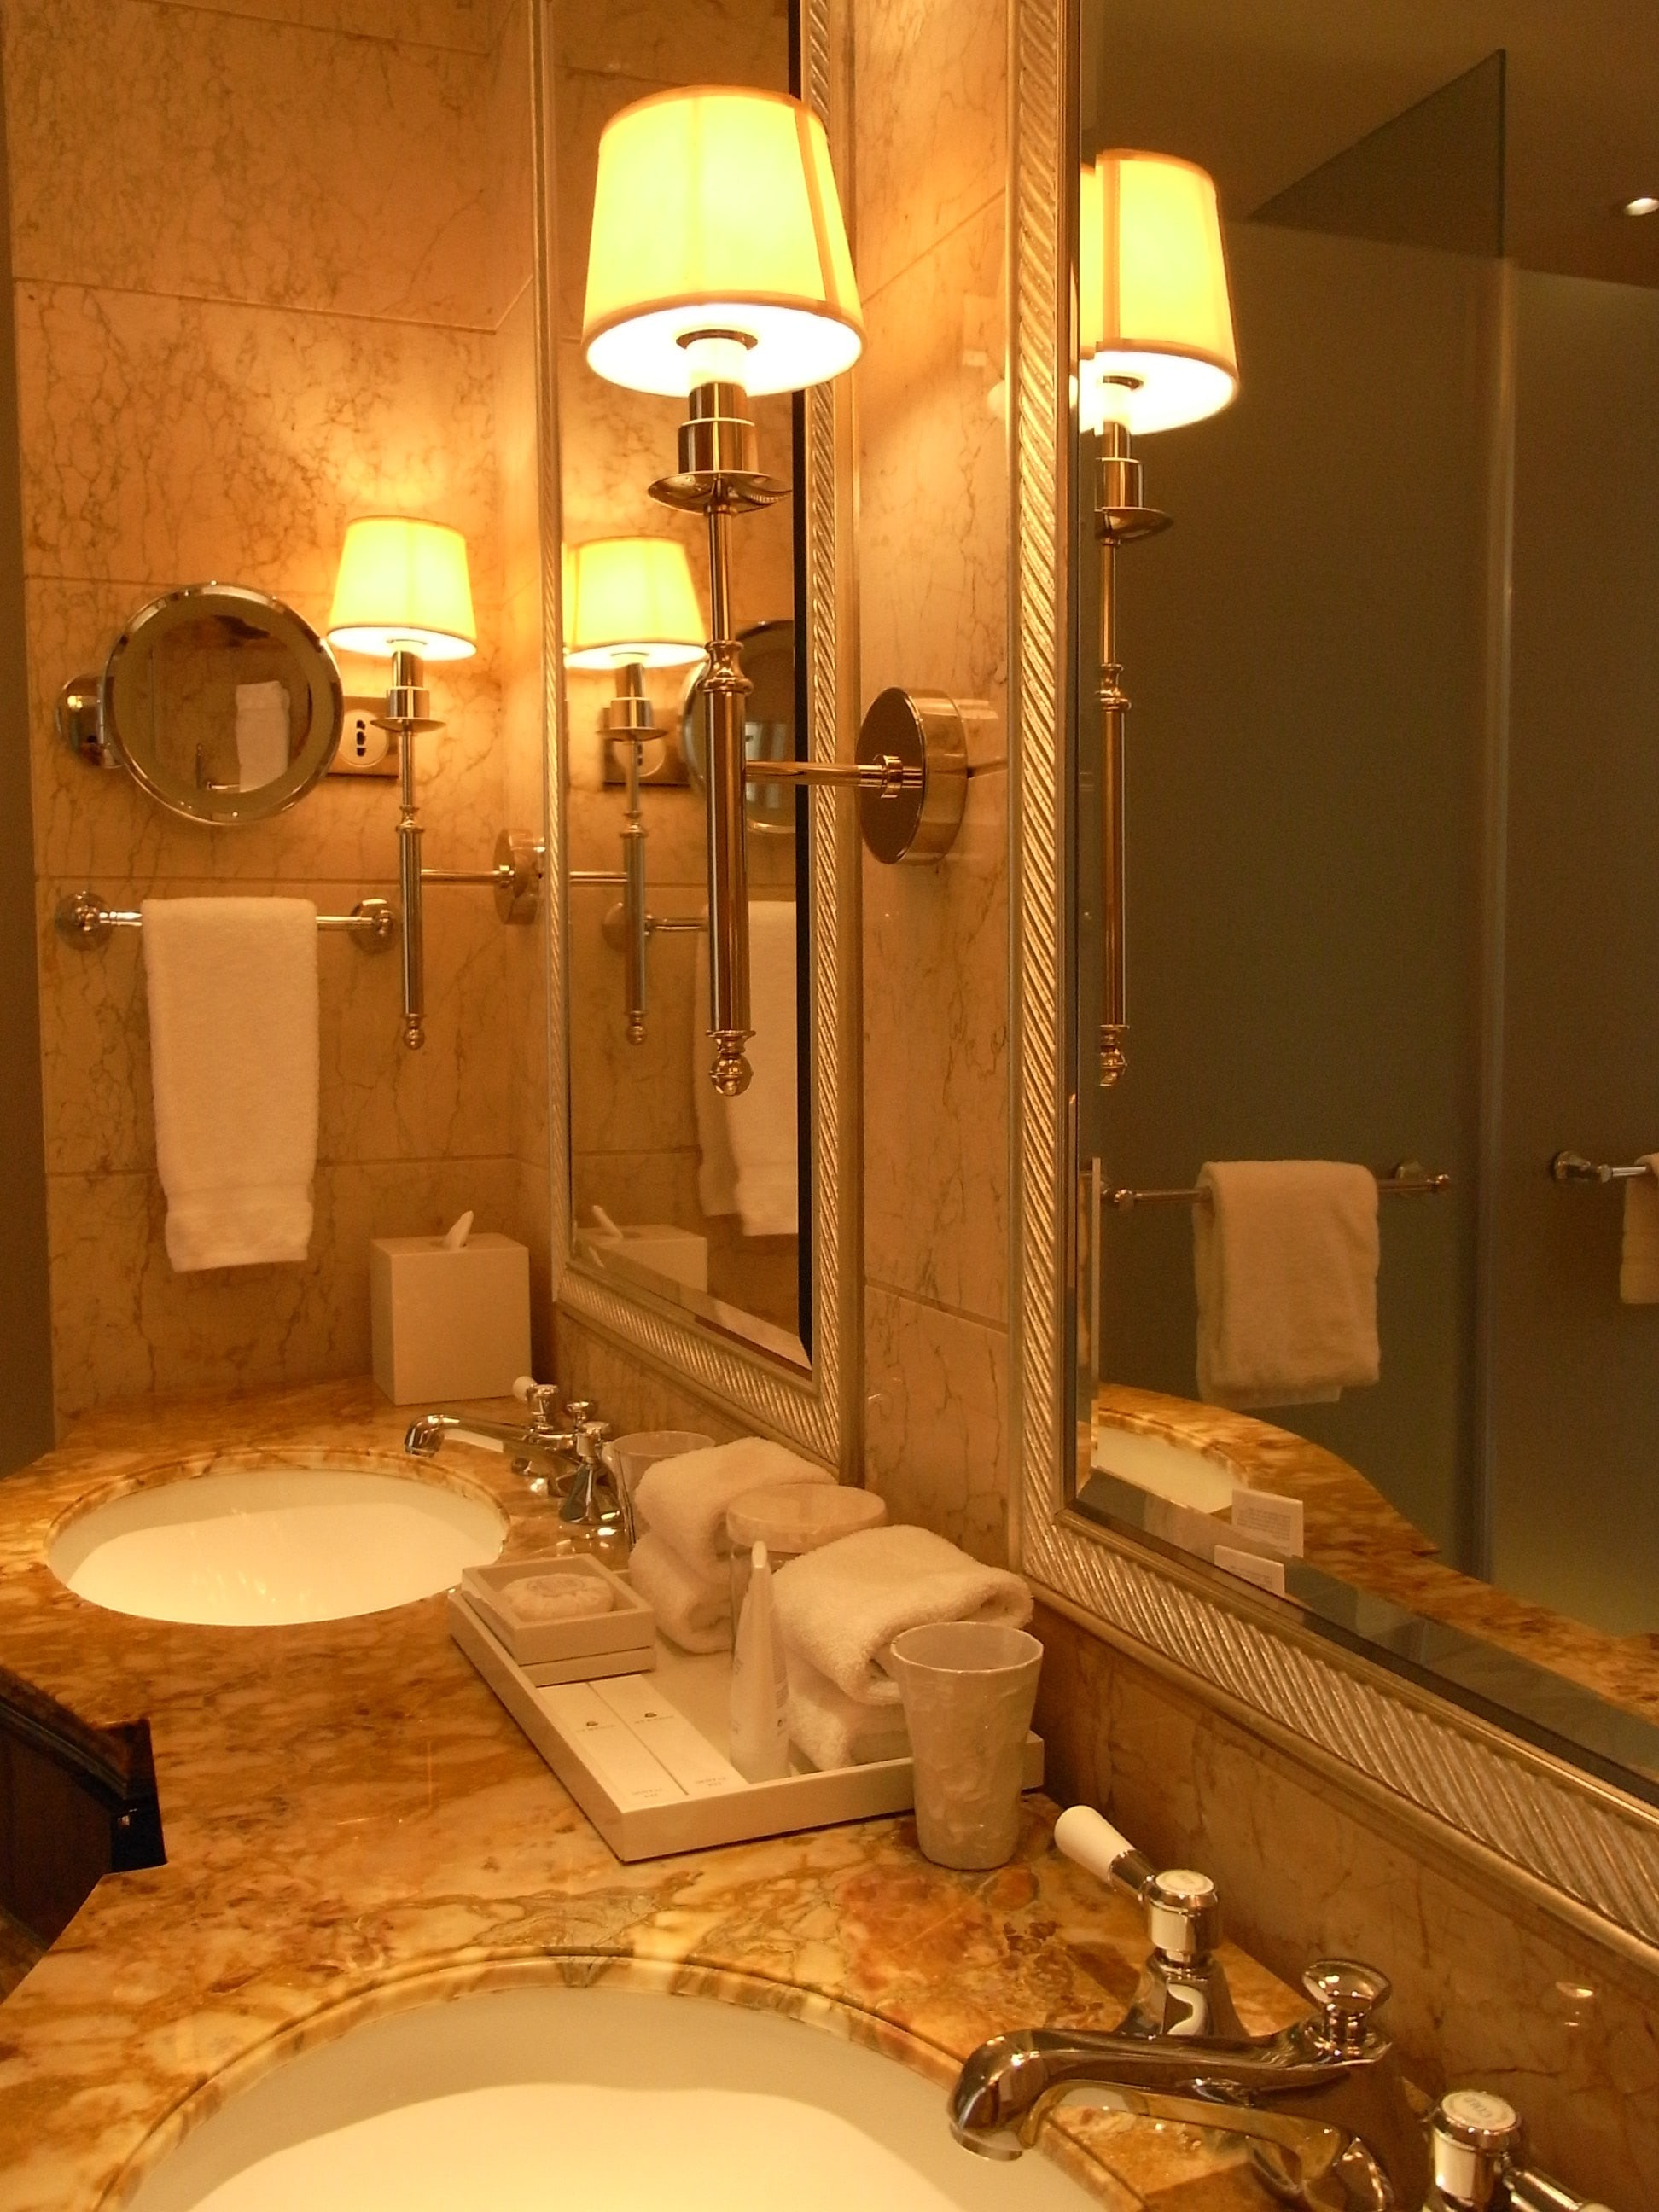 Tips for Installing Bathroom Light Fixtures - Call 916-472-0507!